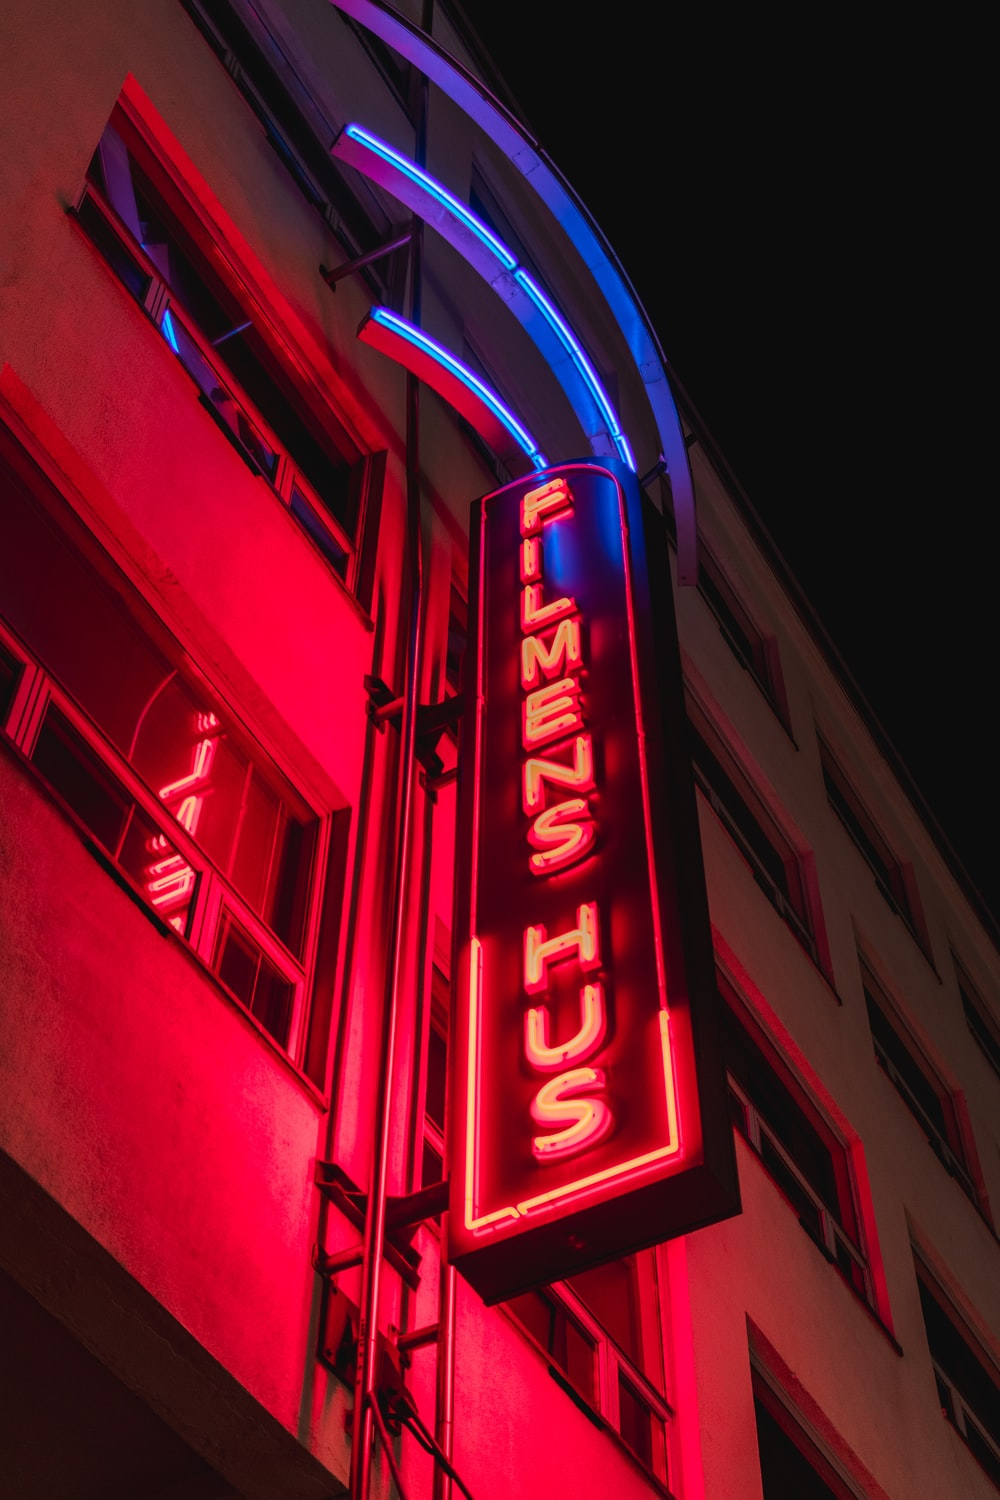 red and white UNK neon light signage